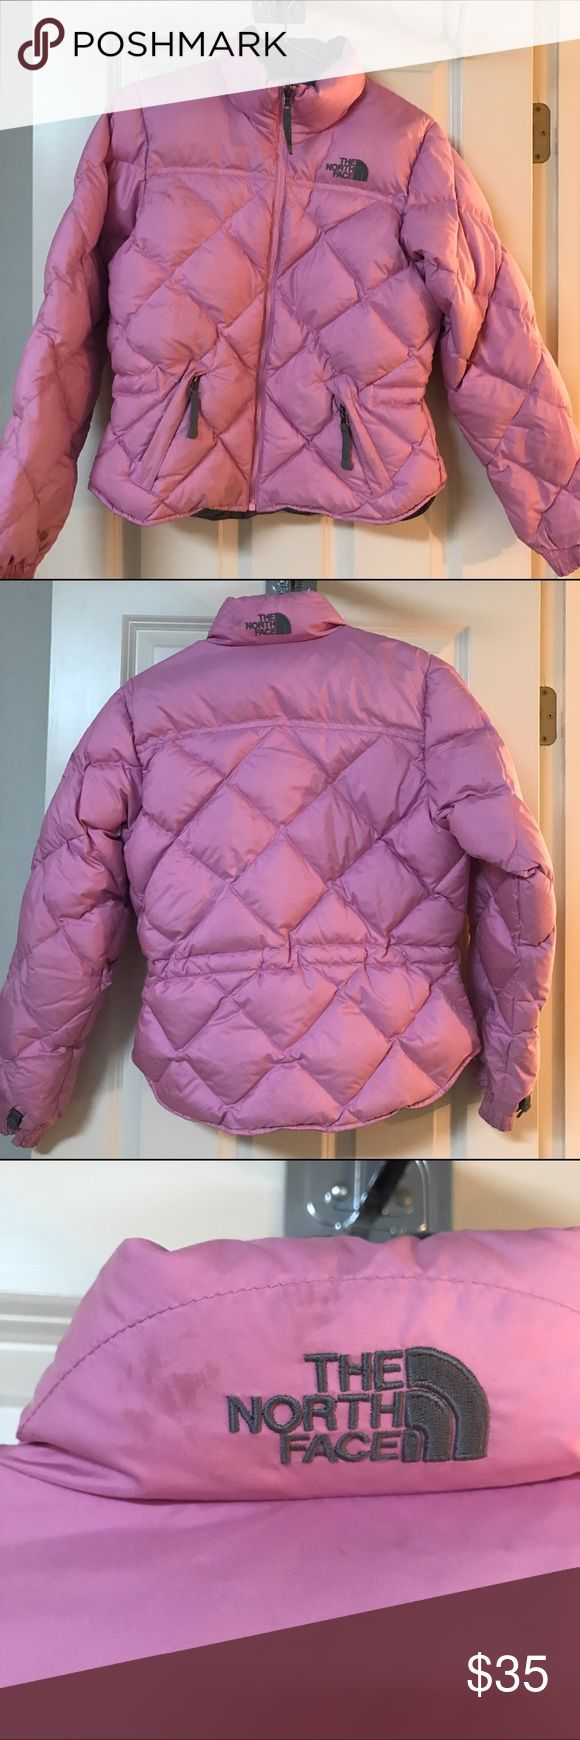 North Face Puffer Jacket North Face Puffer jacket. Size XS. Used. Has stains. I wore this snow skiing for many years. There are stains and spots but nothing drastic!! (See photos)...priced to sell.... No trades!! It fits very cute and does it's job!!! North Face Jackets & Coats Puffers